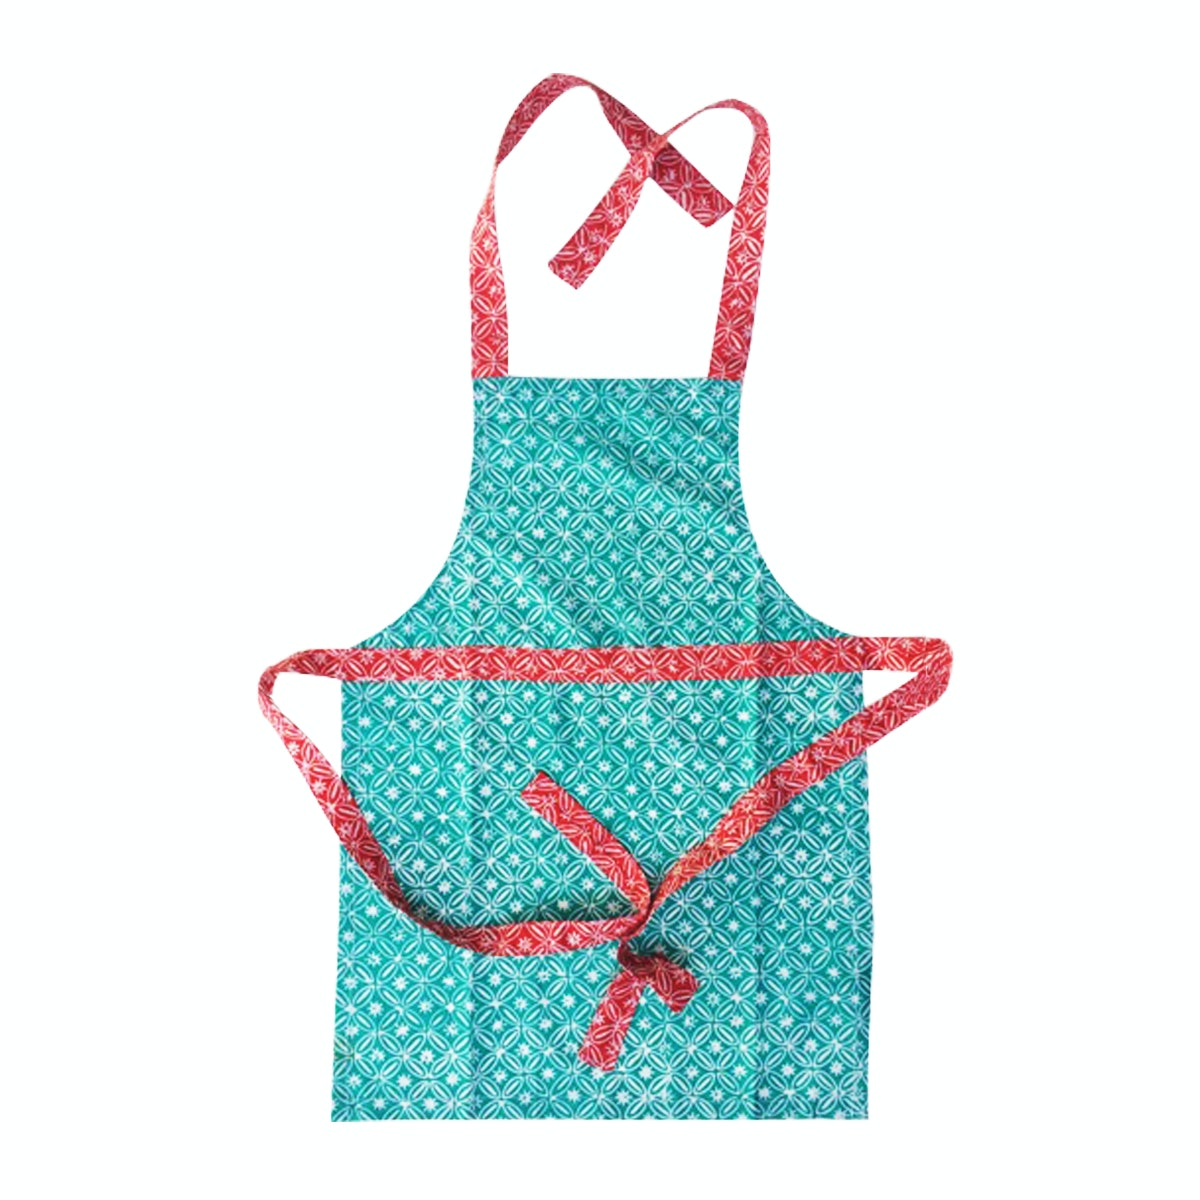 Strawberry Patch Apron Batik Anak-anak Tosca